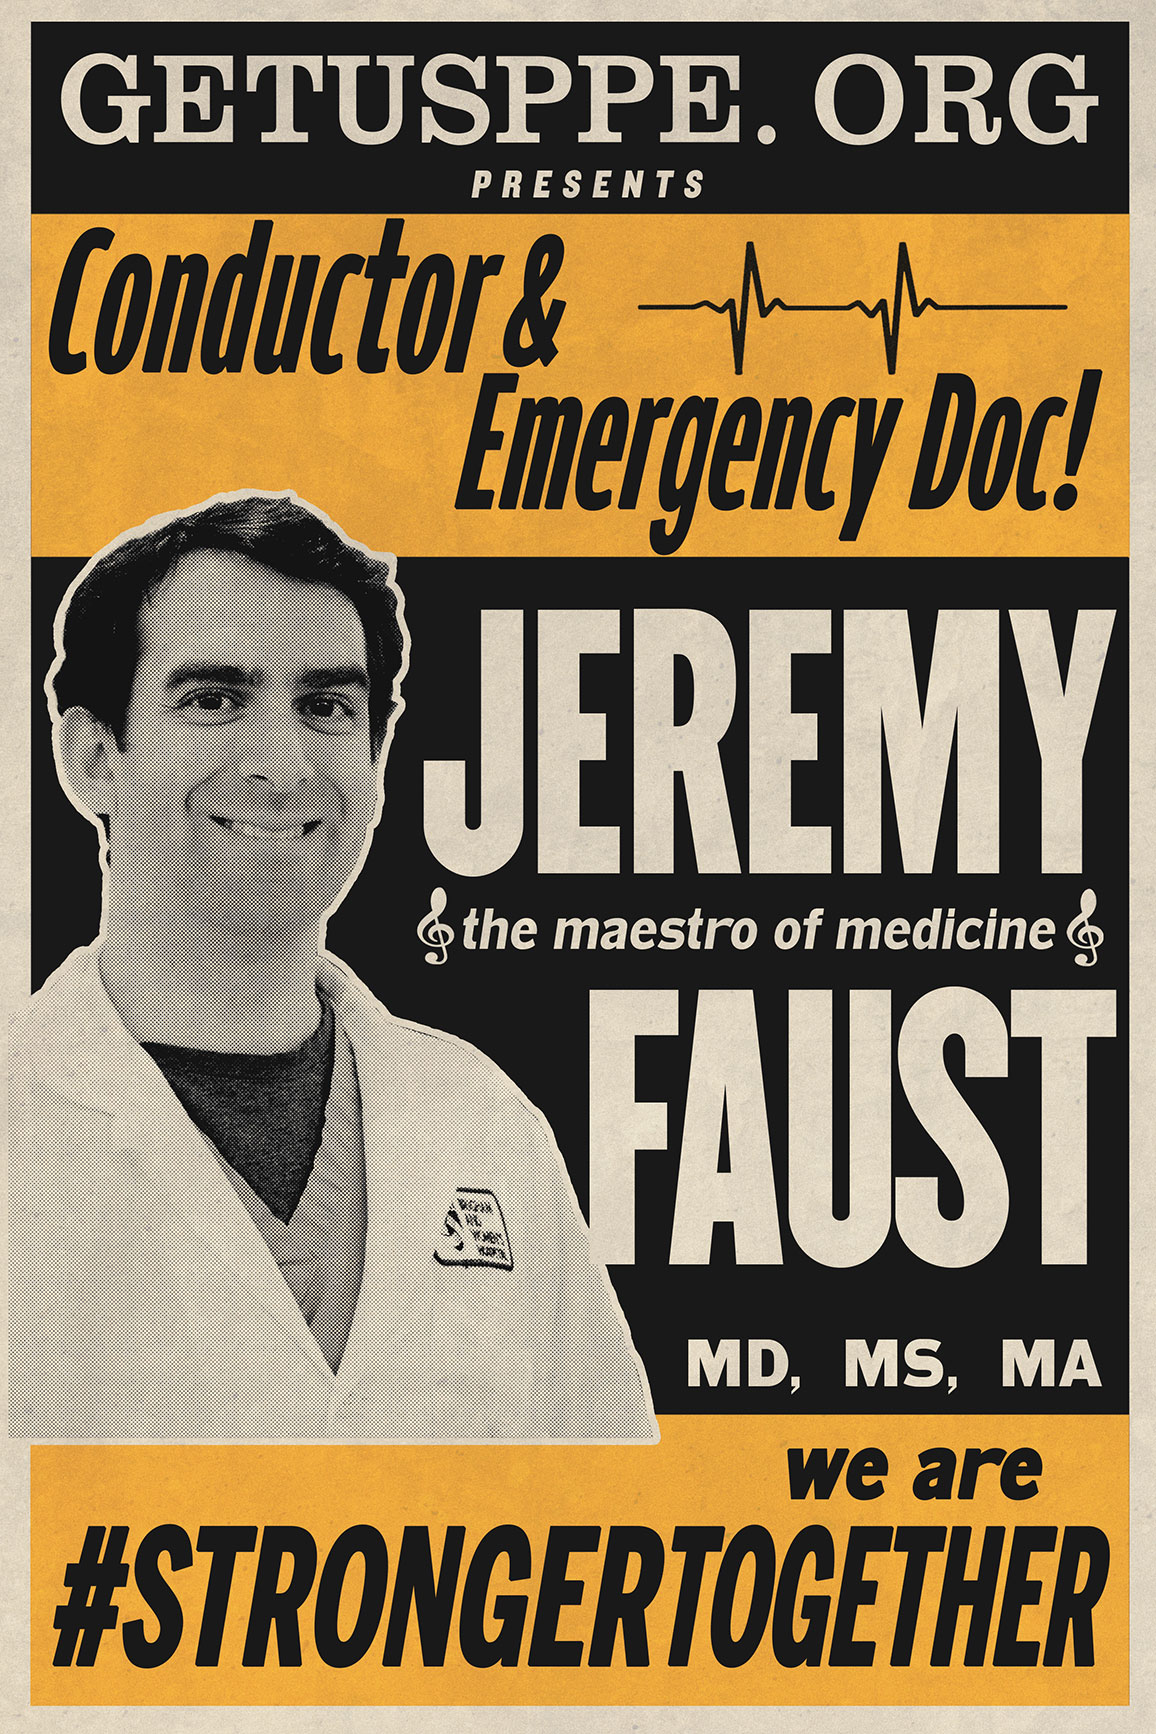 Dr. Jeremy Faust, MD MS MA